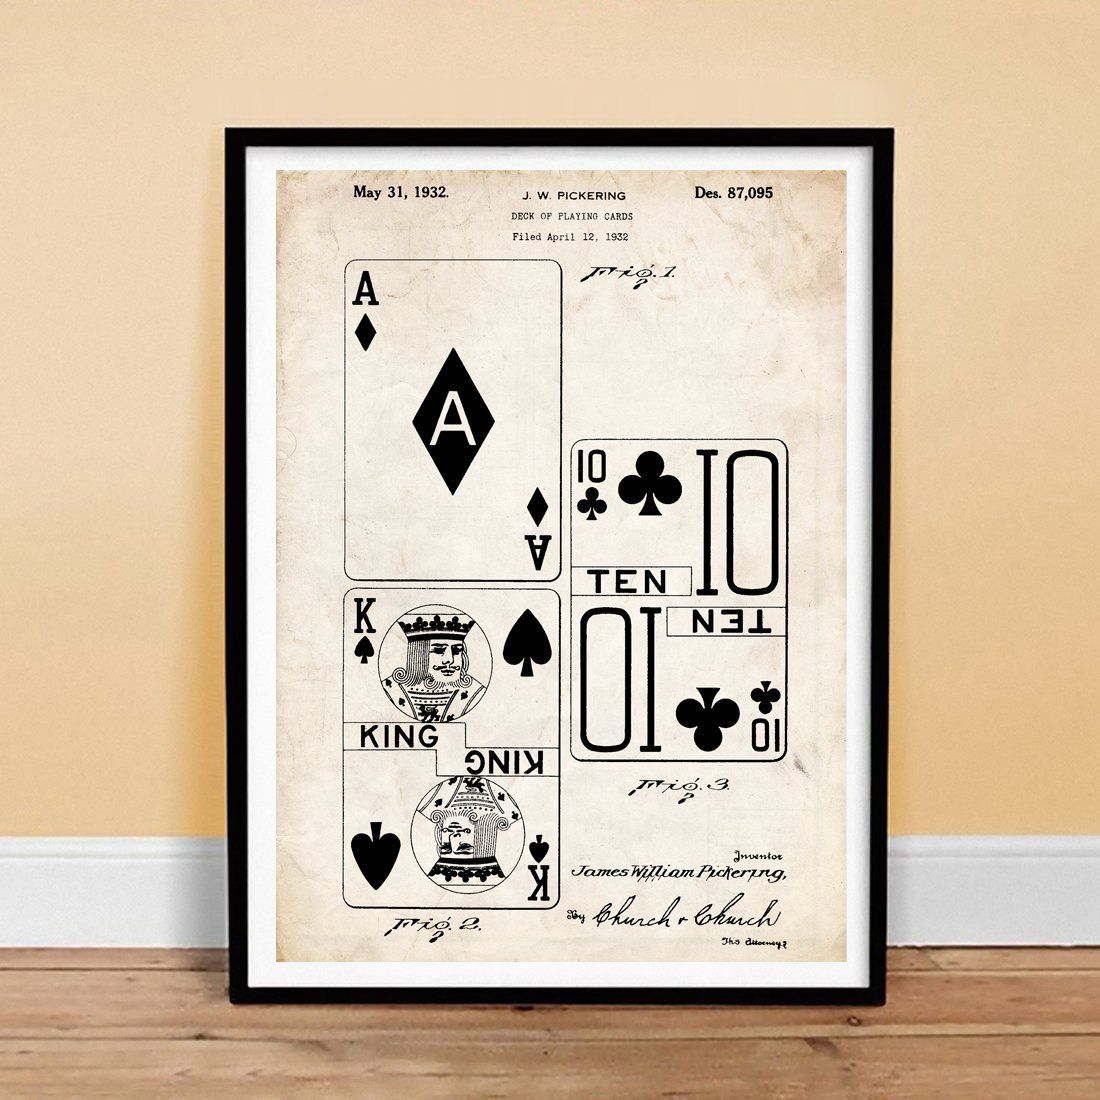 Amazon.com: DECK OF PLAYING CARDS INVENTION 18x24 PATENT ART POSTER PRINT PICKERING 1932 VINTAGE GIFT POKER BRIDGE UNFRAMED: Posters & Prints